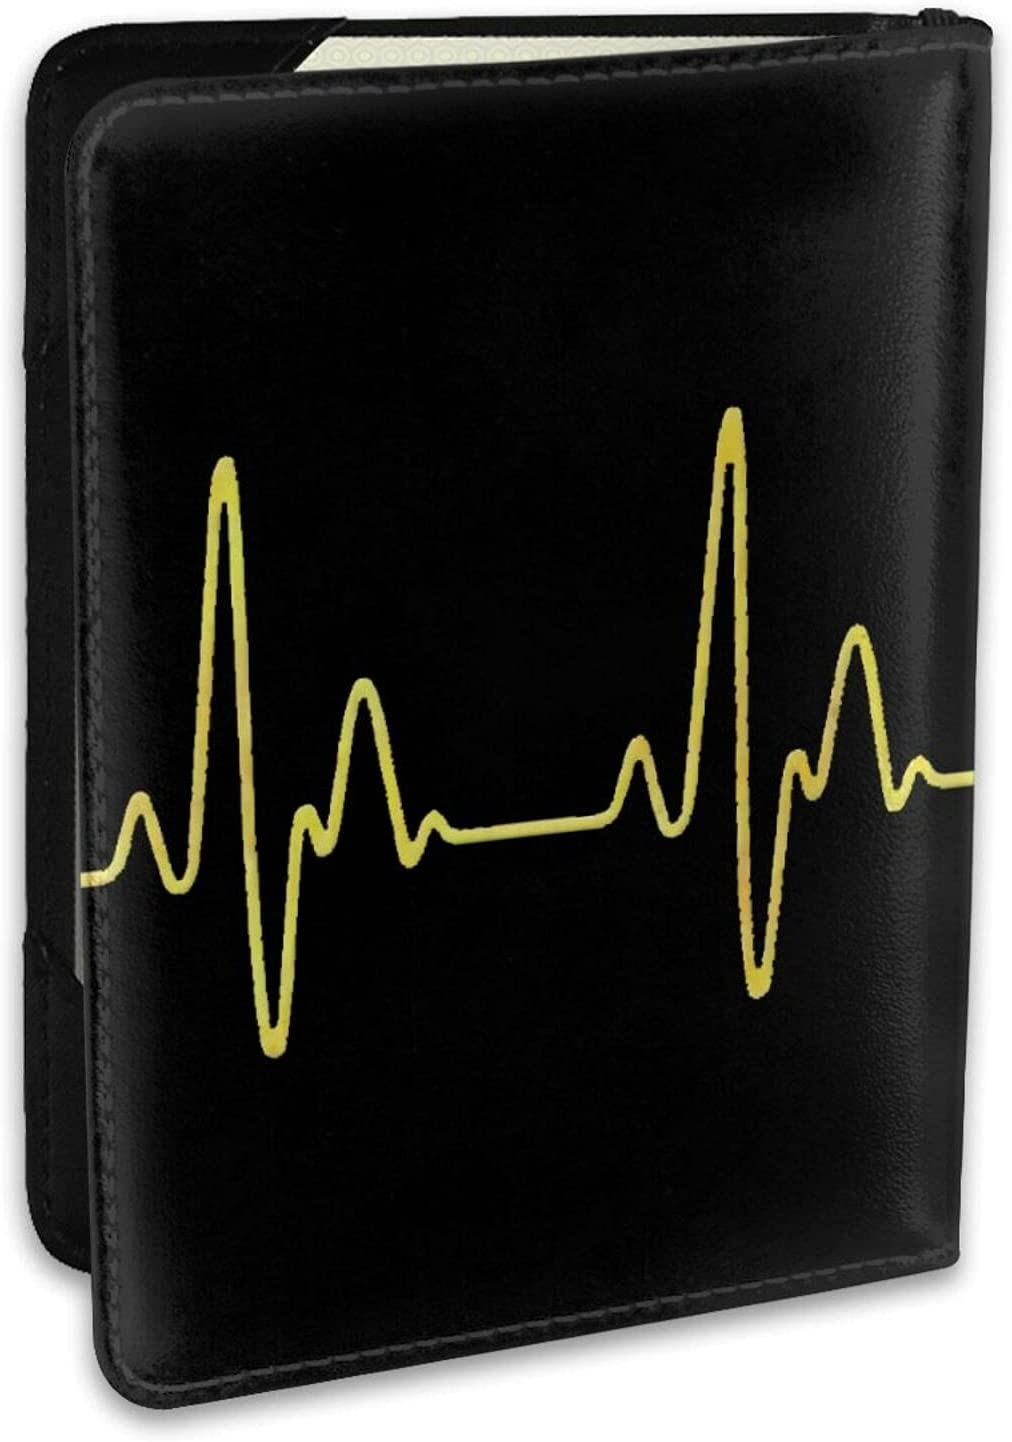 Pickleball Heartbeat Golden Leather Passport Holder Case Fixed Max 45% OFF price for sale Cover